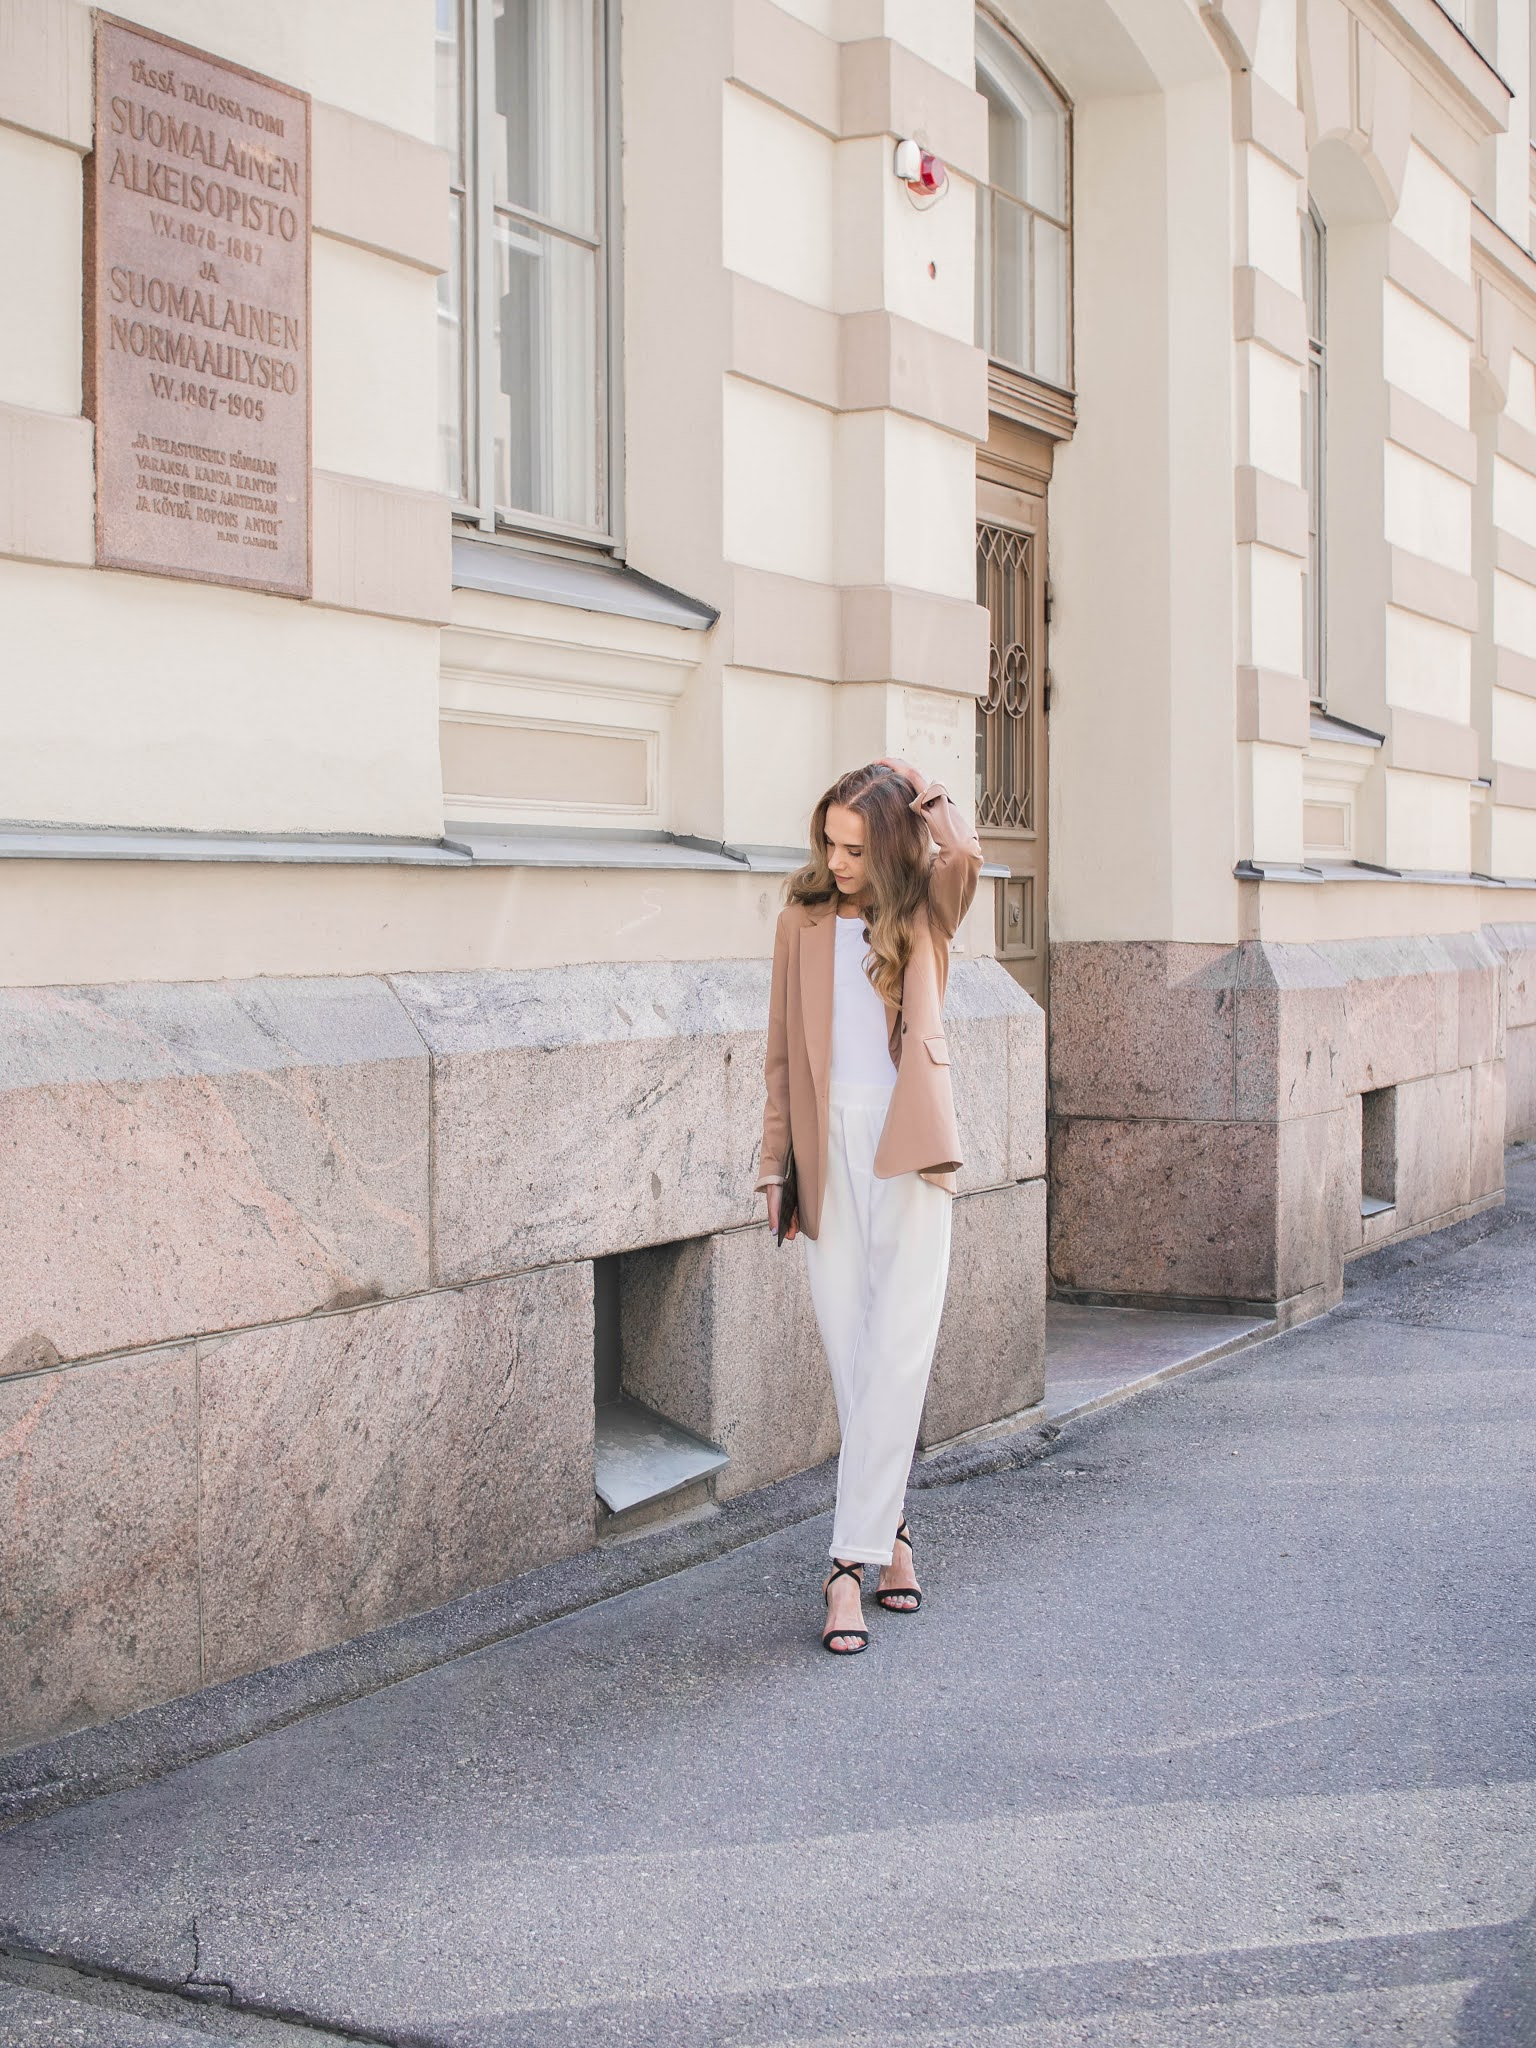 Fashion blogger style inspiration, smart suit outfit - Muotibloggaaja, inspiraatio, pukeutuminen, jakkupuku